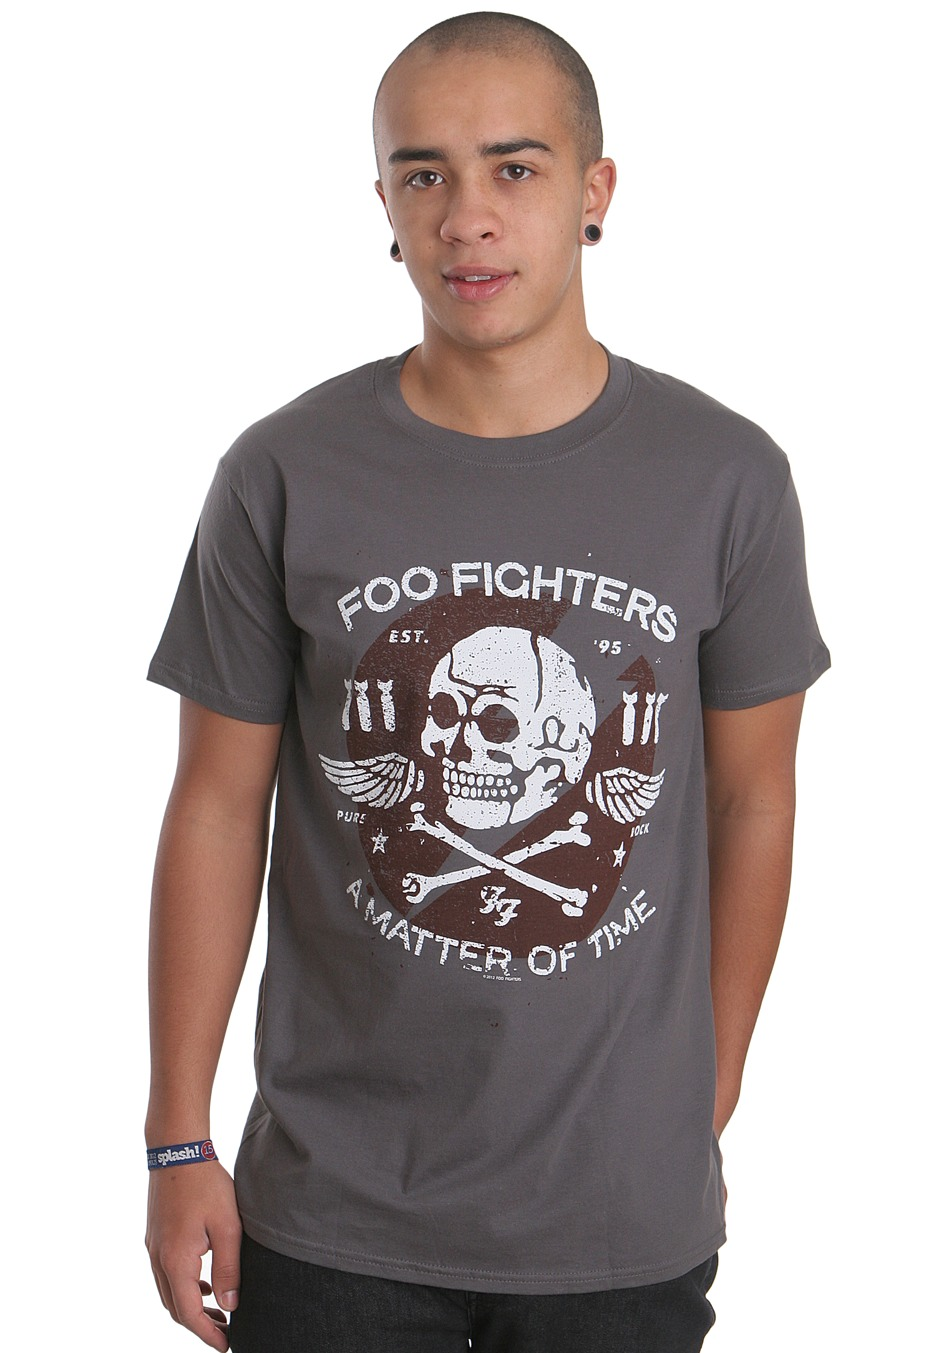 efa52d562ddb Foo Fighters - Matter Of Time Charcoal - T-Shirt - Official Folk Rock  Merchandise Shop - Impericon.com UK